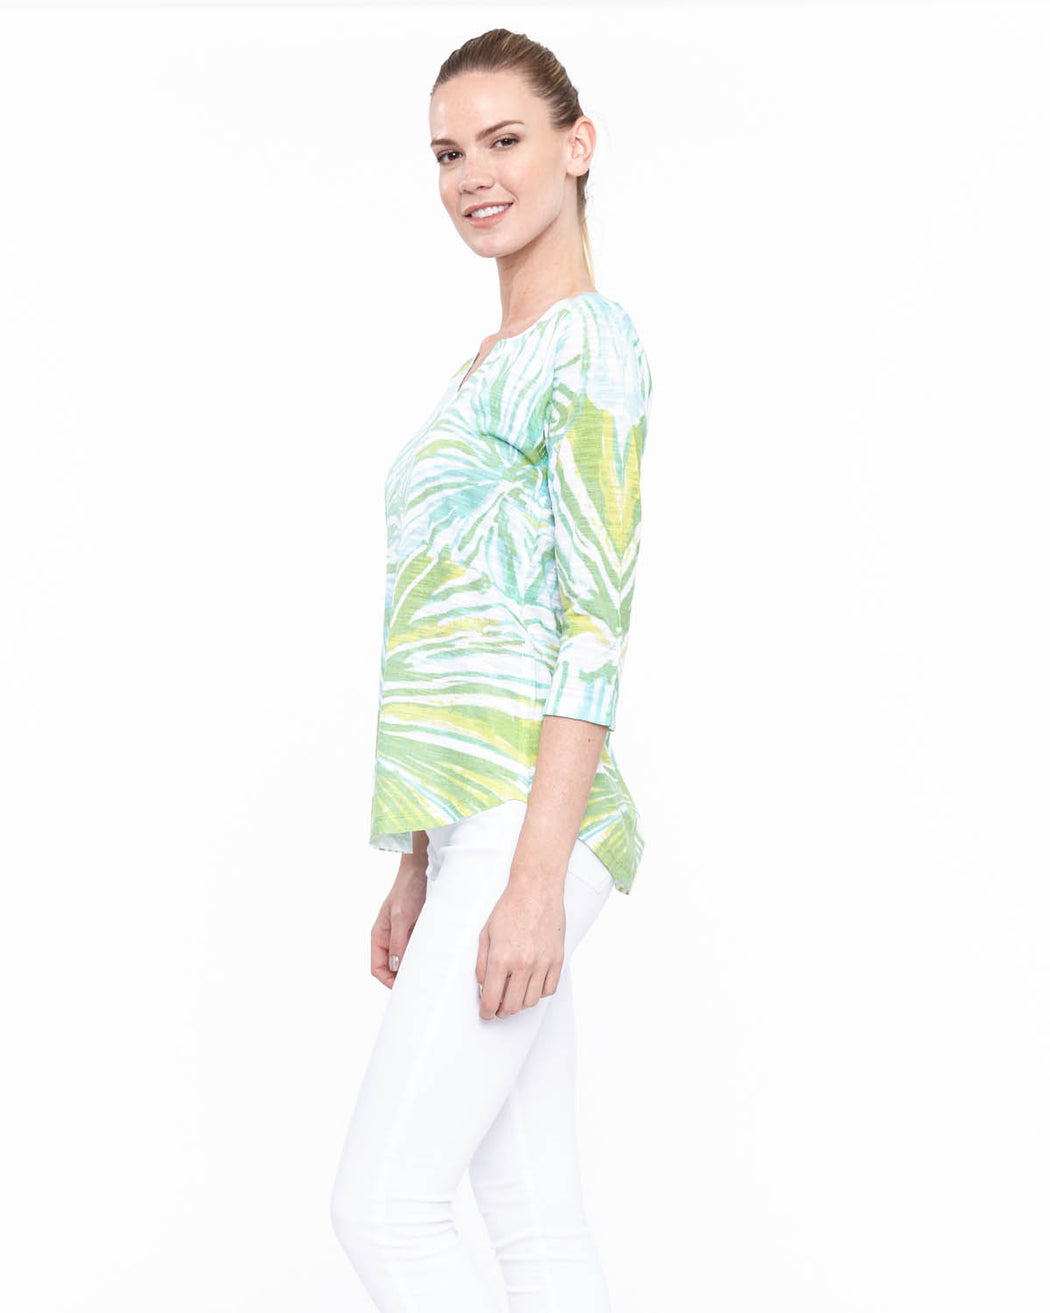 Tunic 2 in Tropical Dream Print - Atelier5